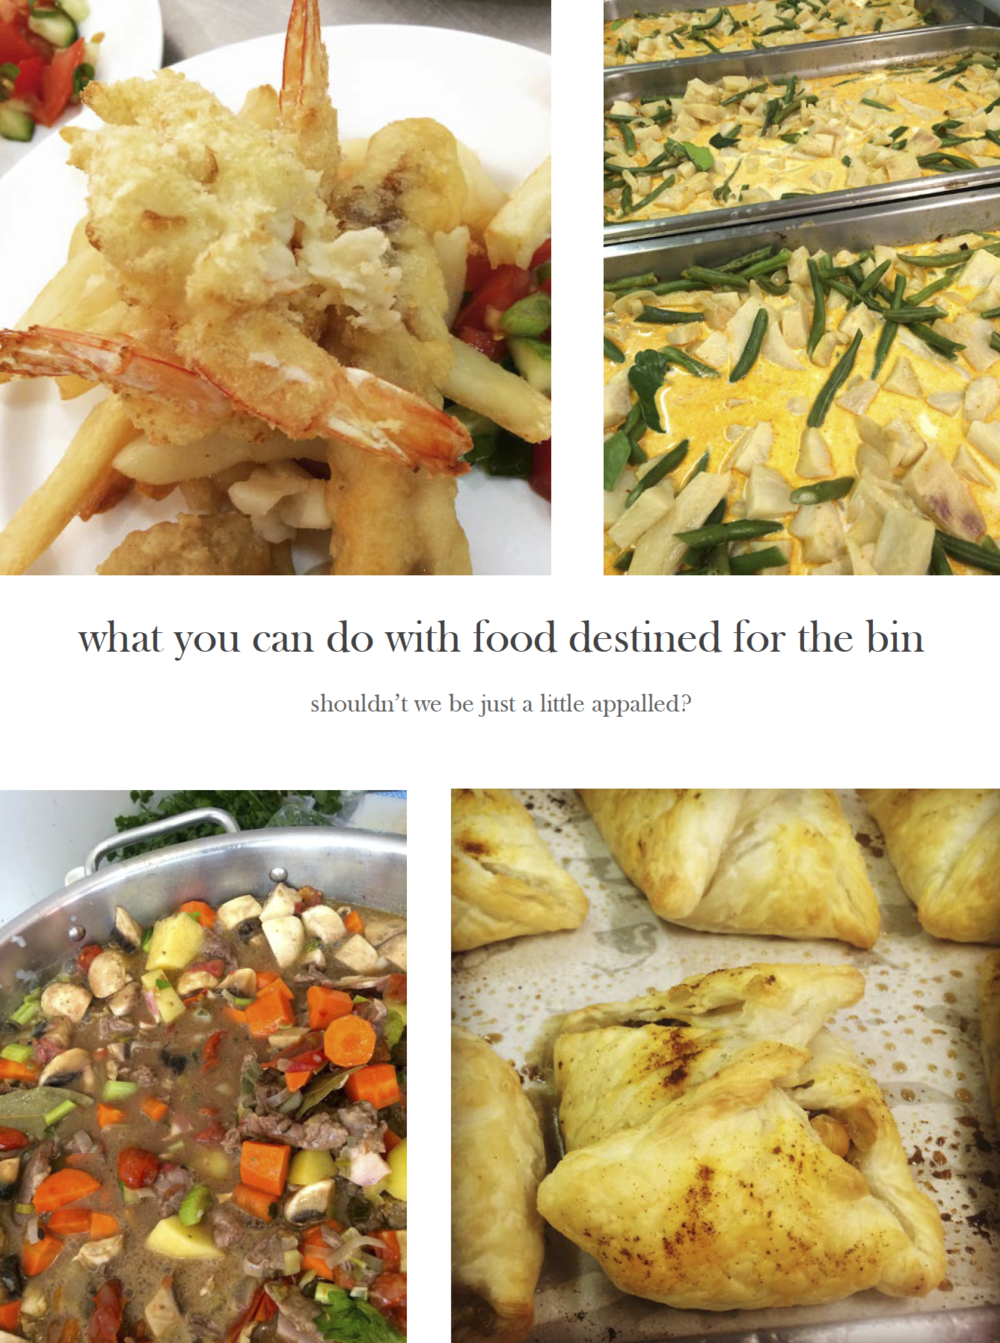 food-for-the-bin